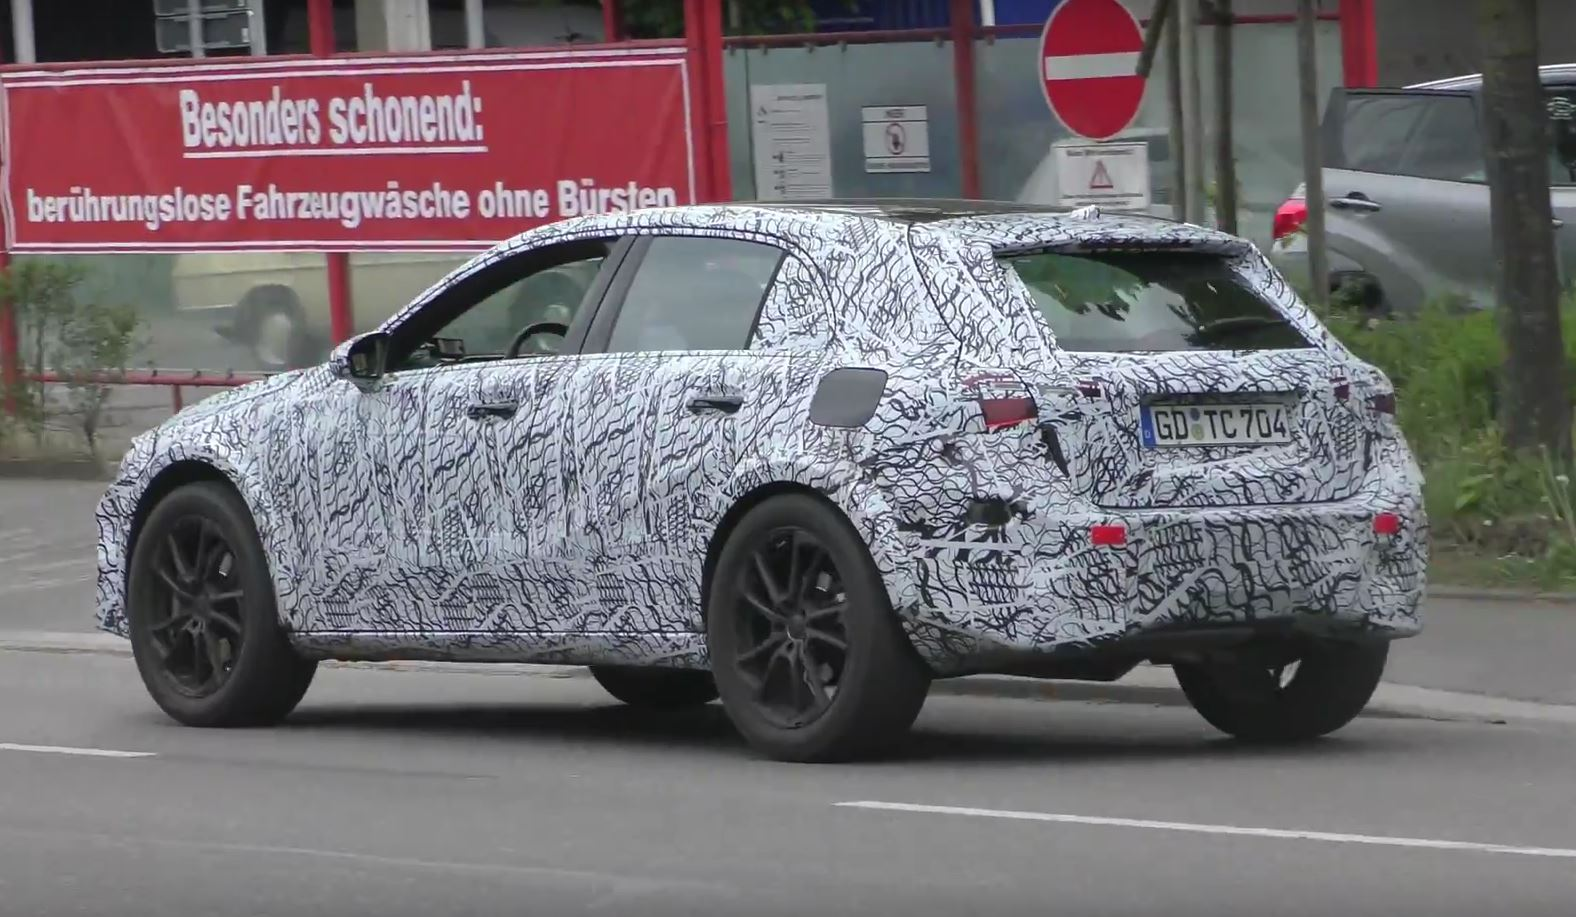 2019 mercedes gla-class spied on the road  looks better than bmw x2